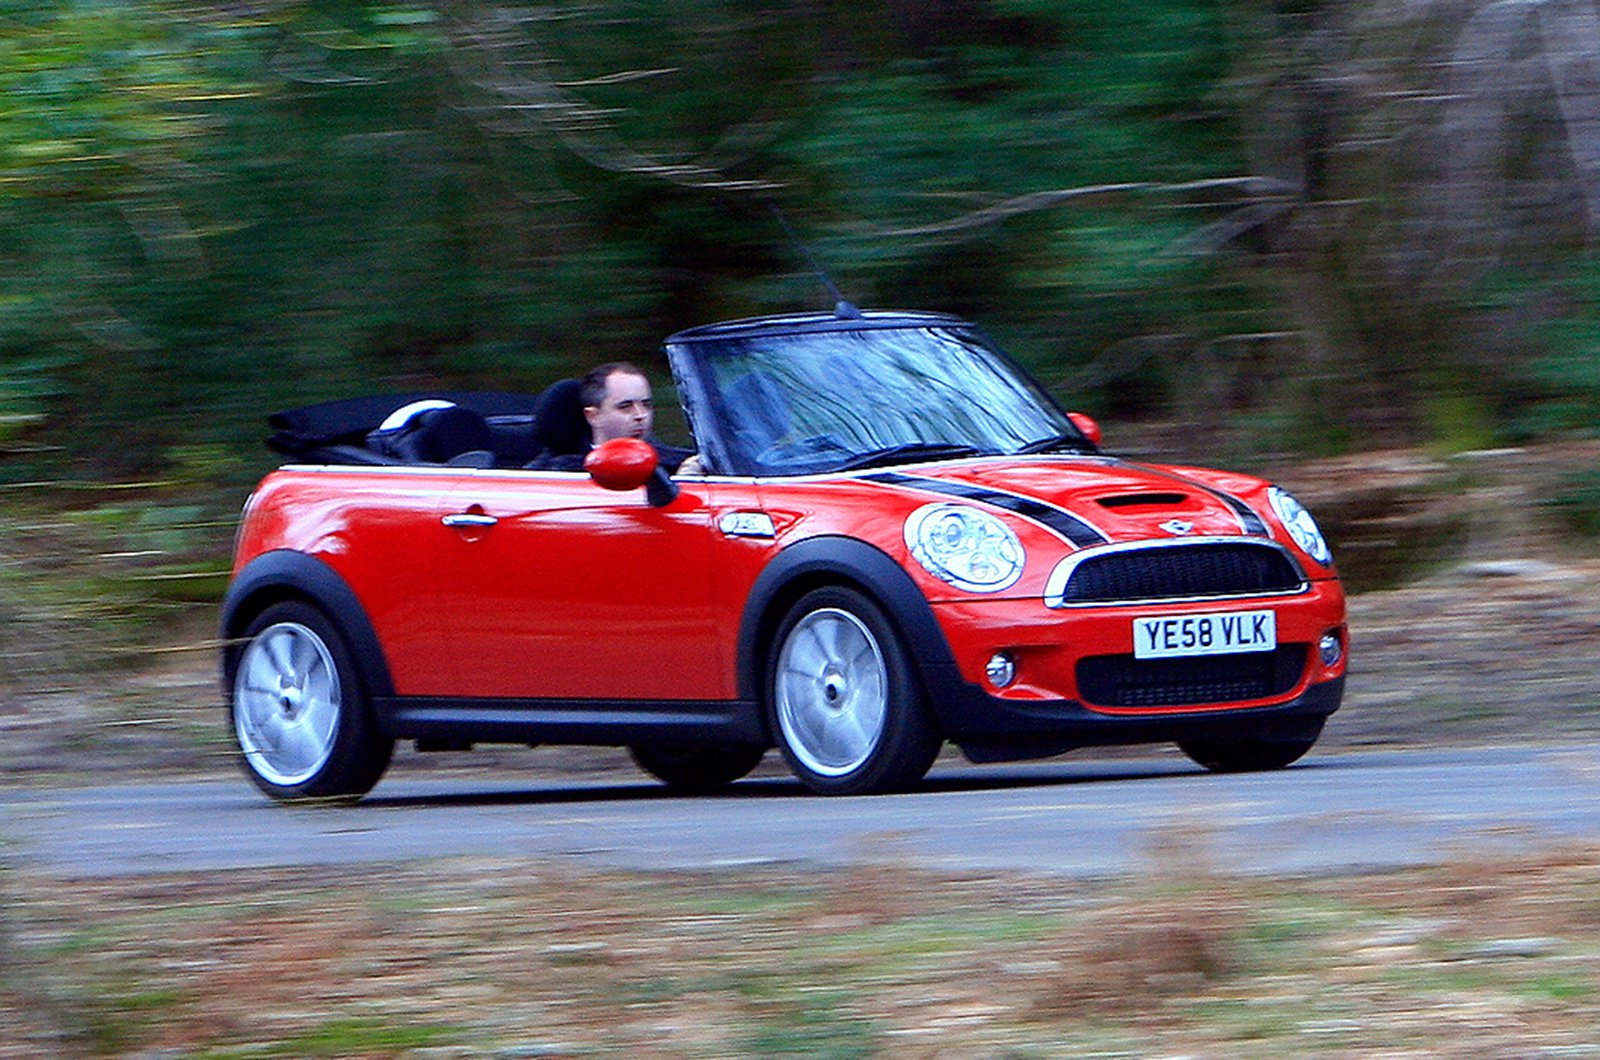 Used Mini Convertible 2009 - 2015